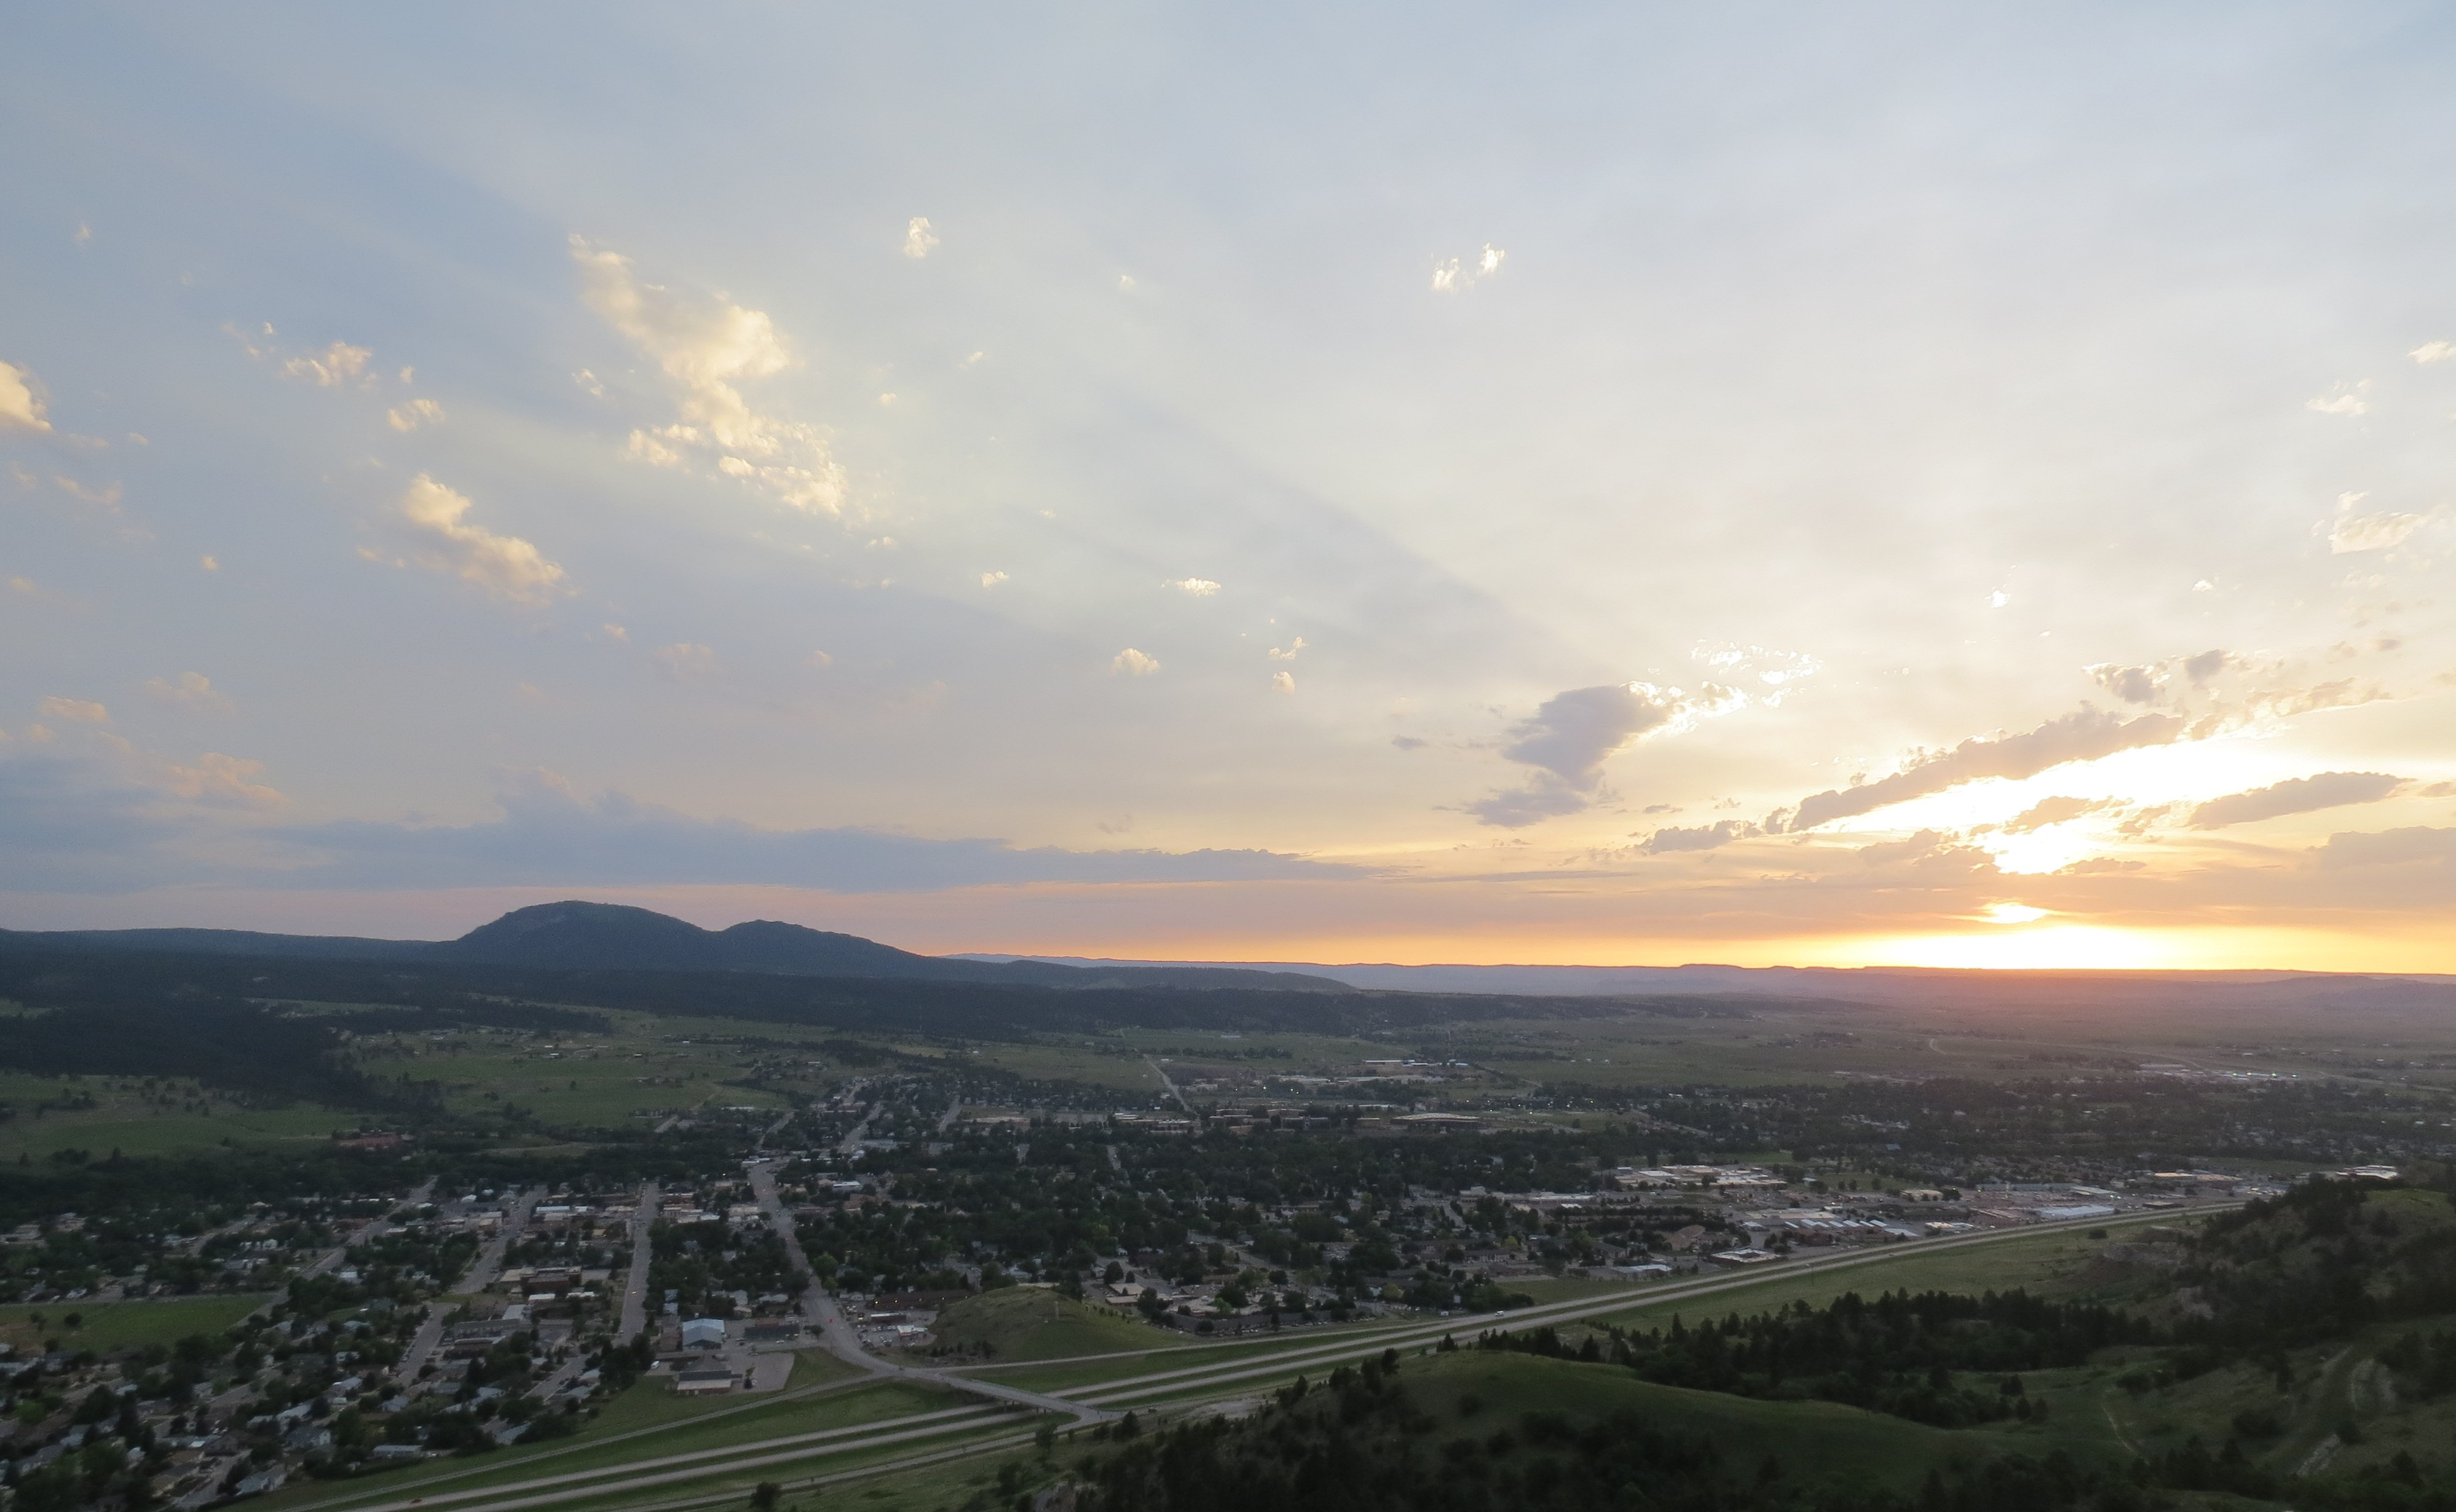 Lookout Mountain Spearfish, SD NW view